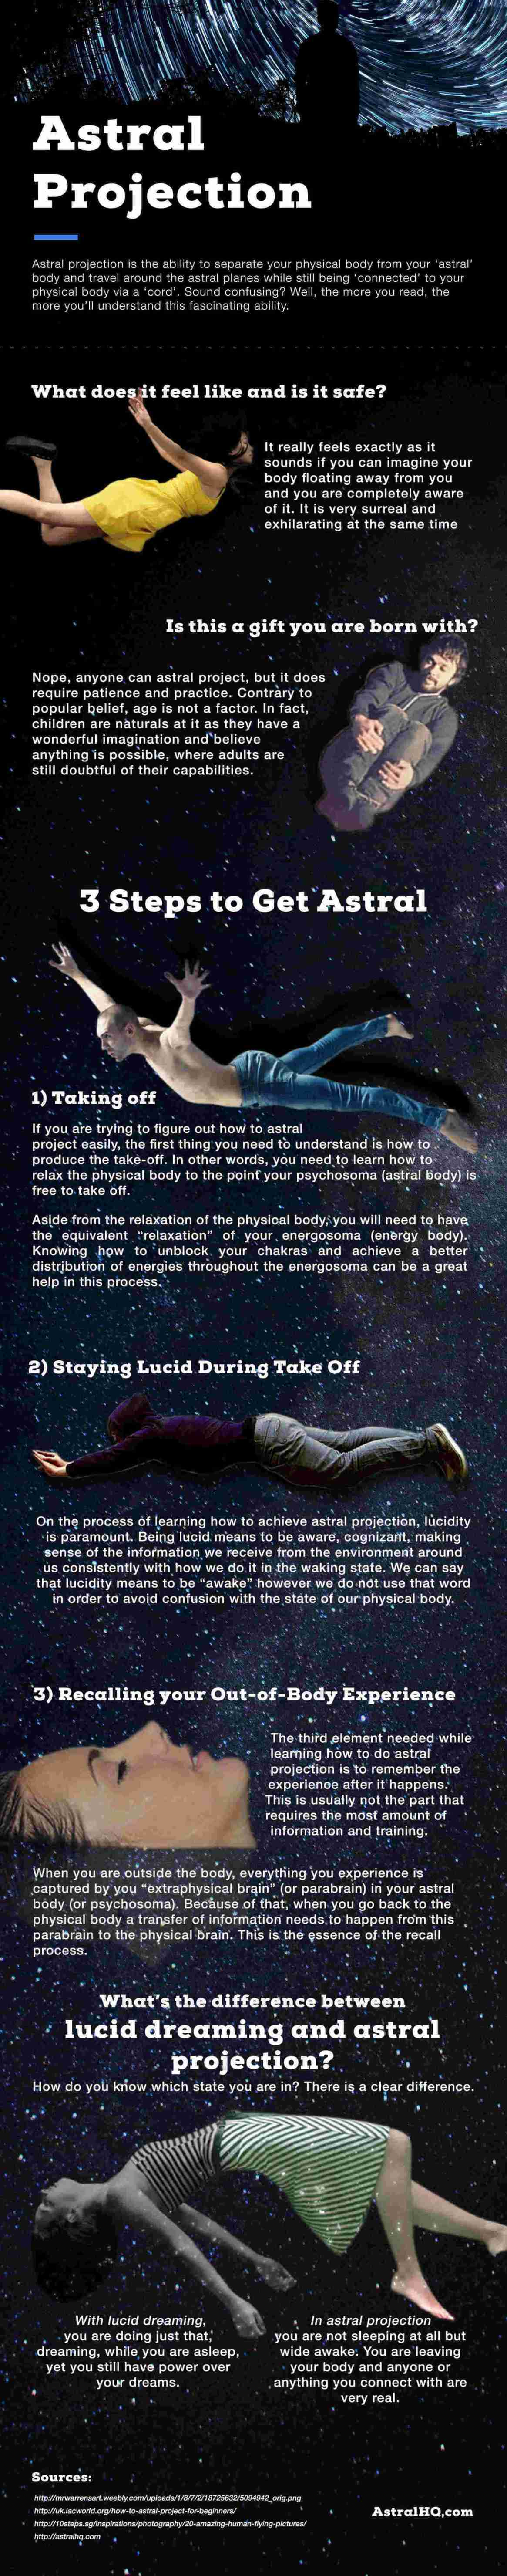 Beginners Guide To Astral Projection: How To Have an OBE